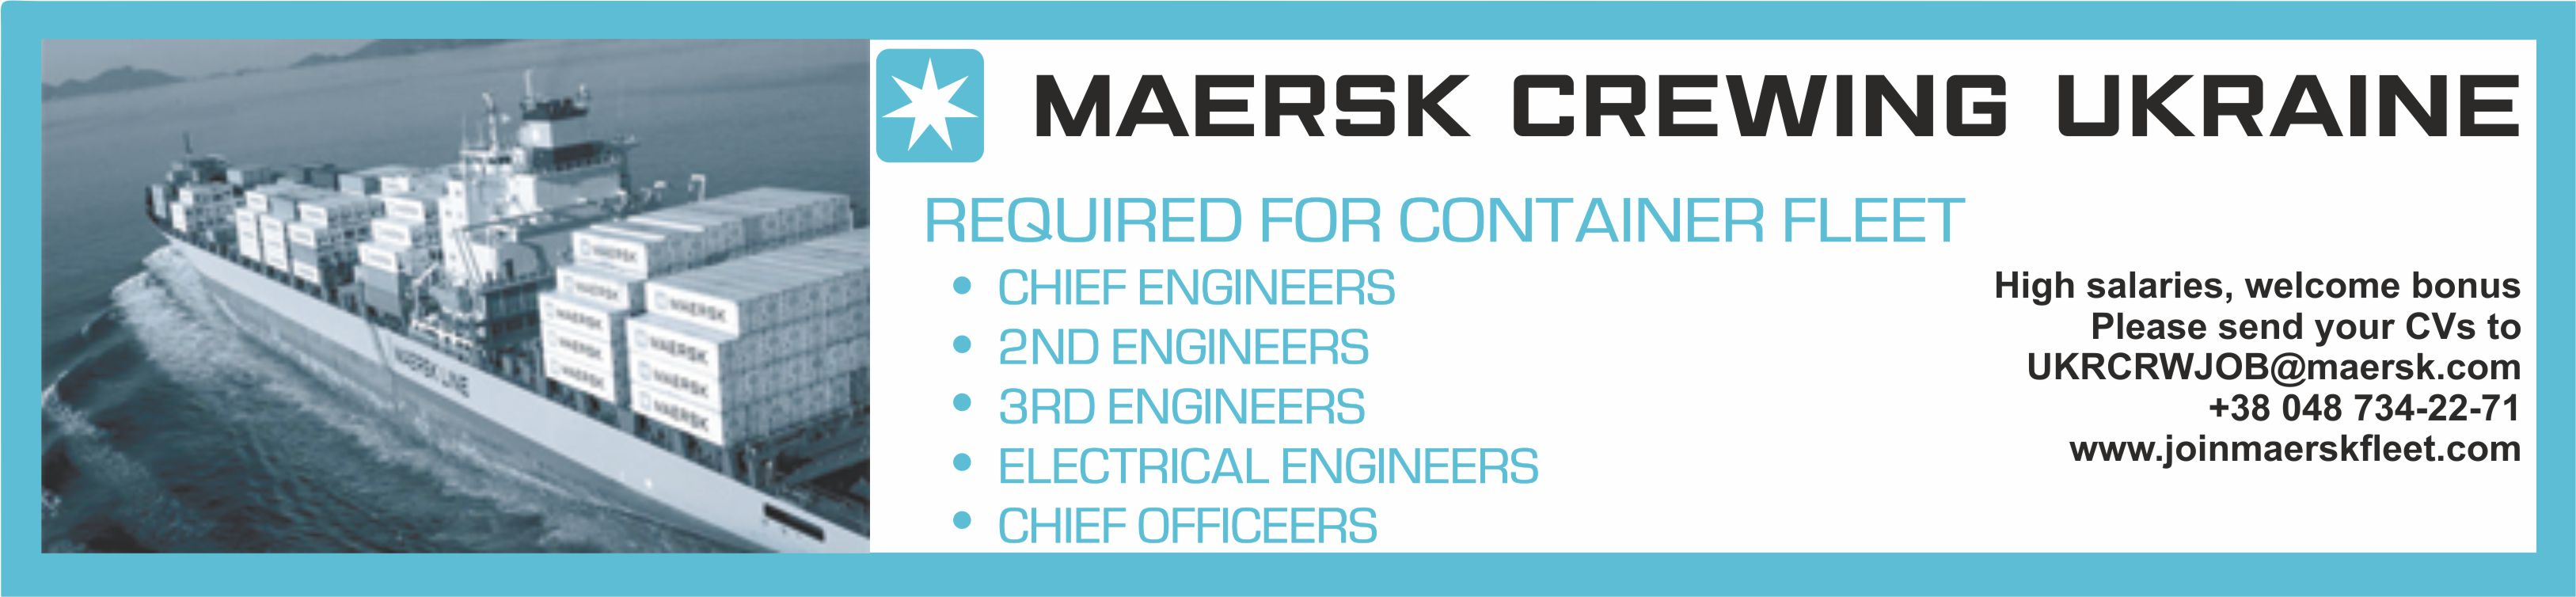 Вакансии на контейнеровозы для Chief engineer, 2nd engineer, 3rd engineer, electrical engineer, chief officeer